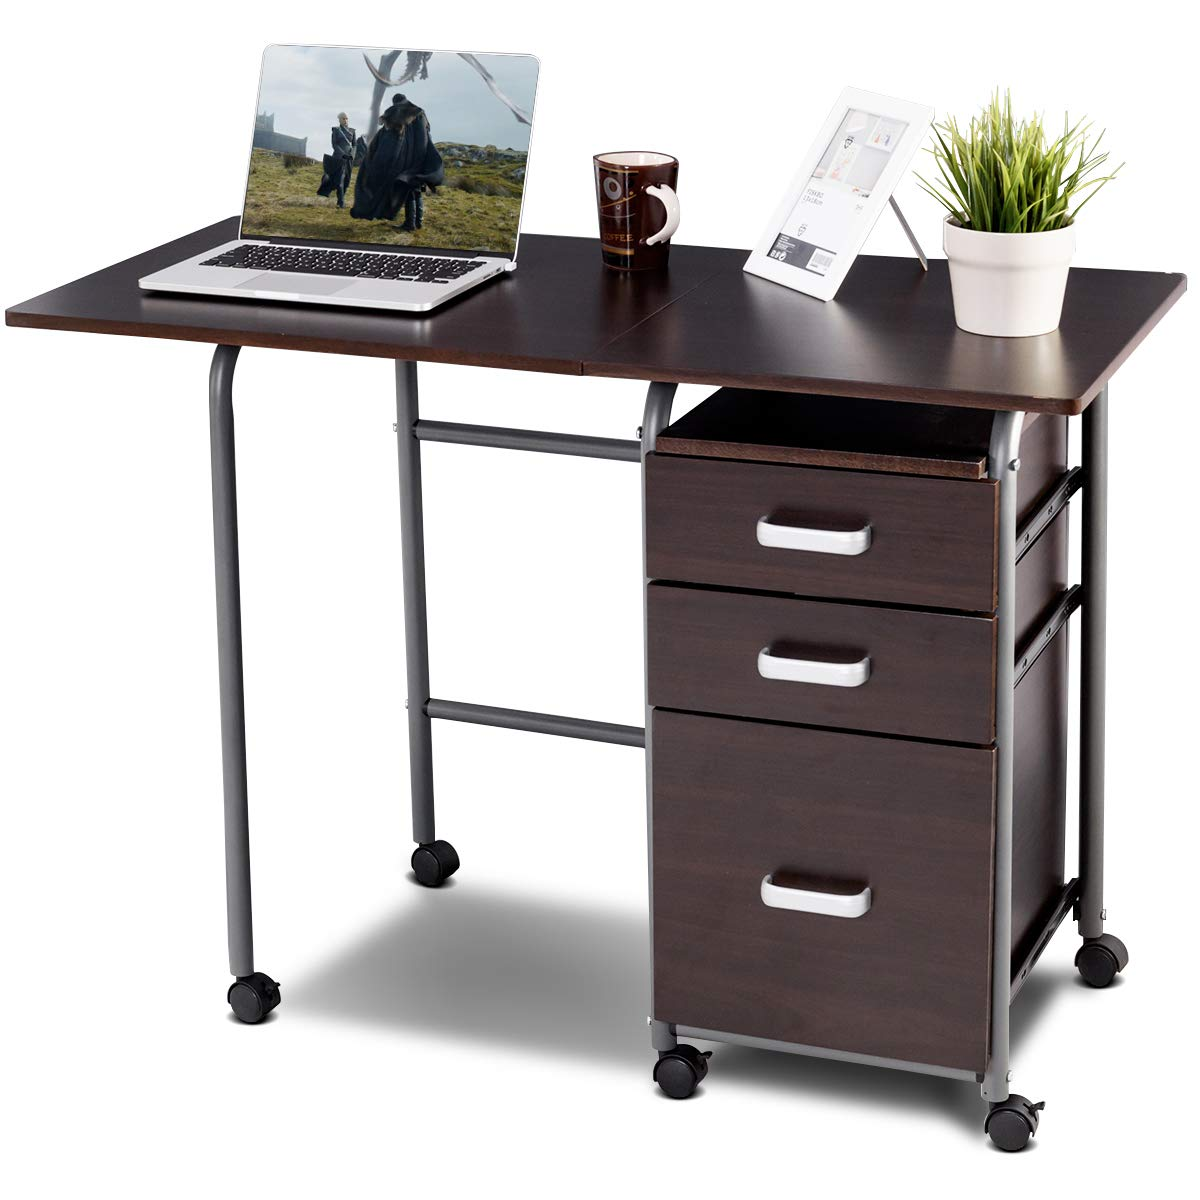 Tangkula folding computer desk wheeled home office furniture with 3 drawers laptop desk writing table portable dome apartment space saving compact desk for